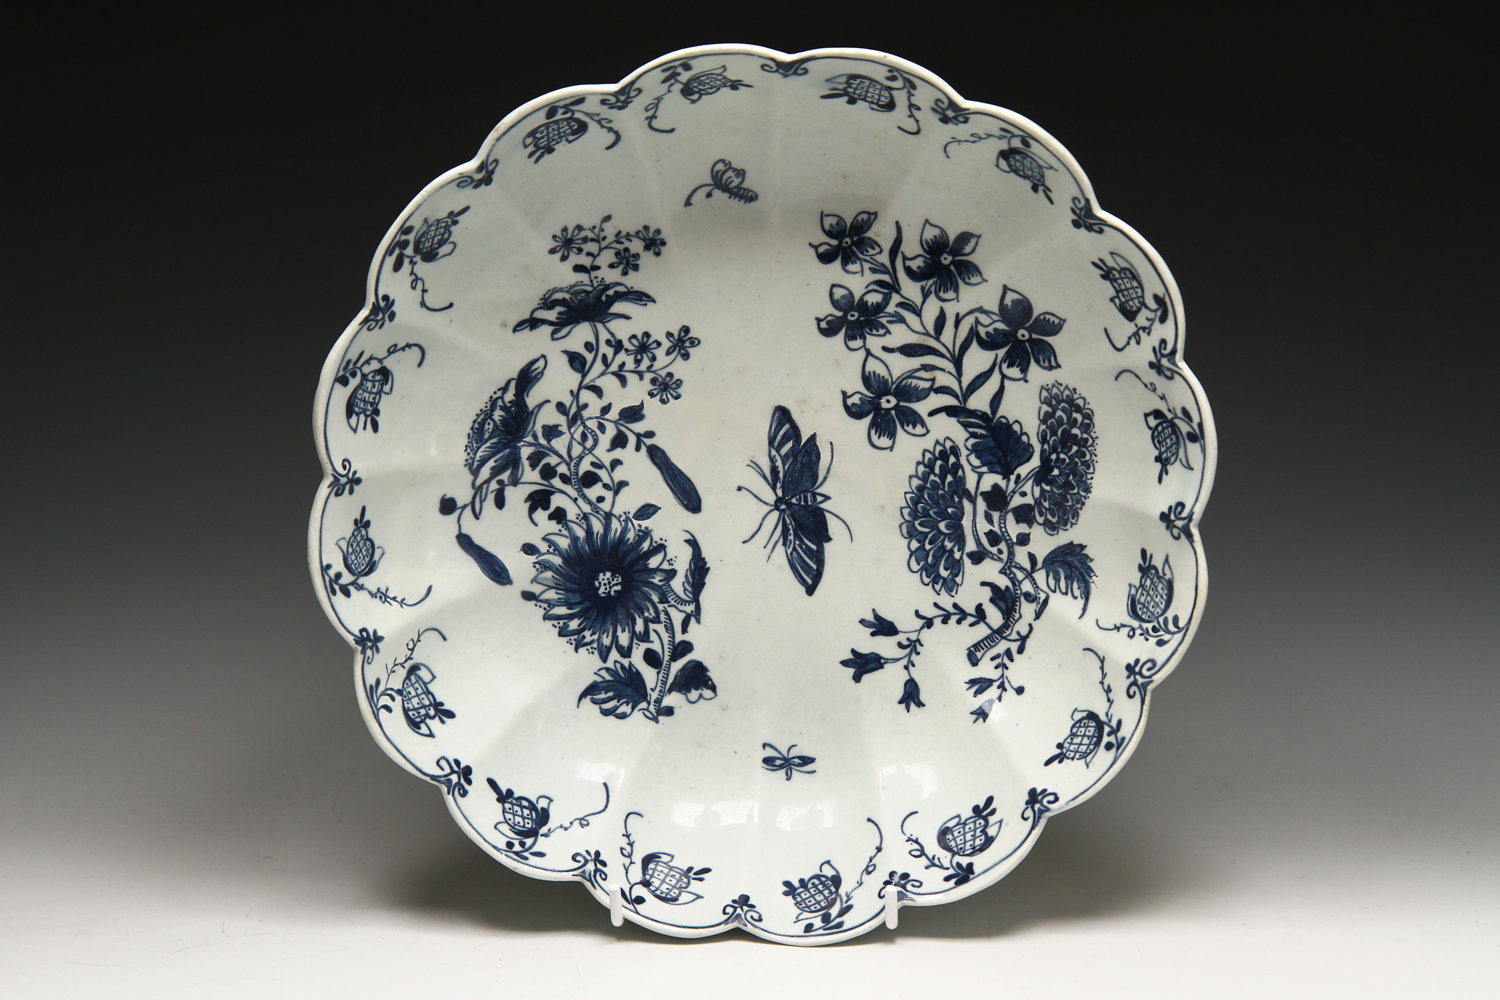 1060 - A rare Lowestoft Junket dish c 1763-5